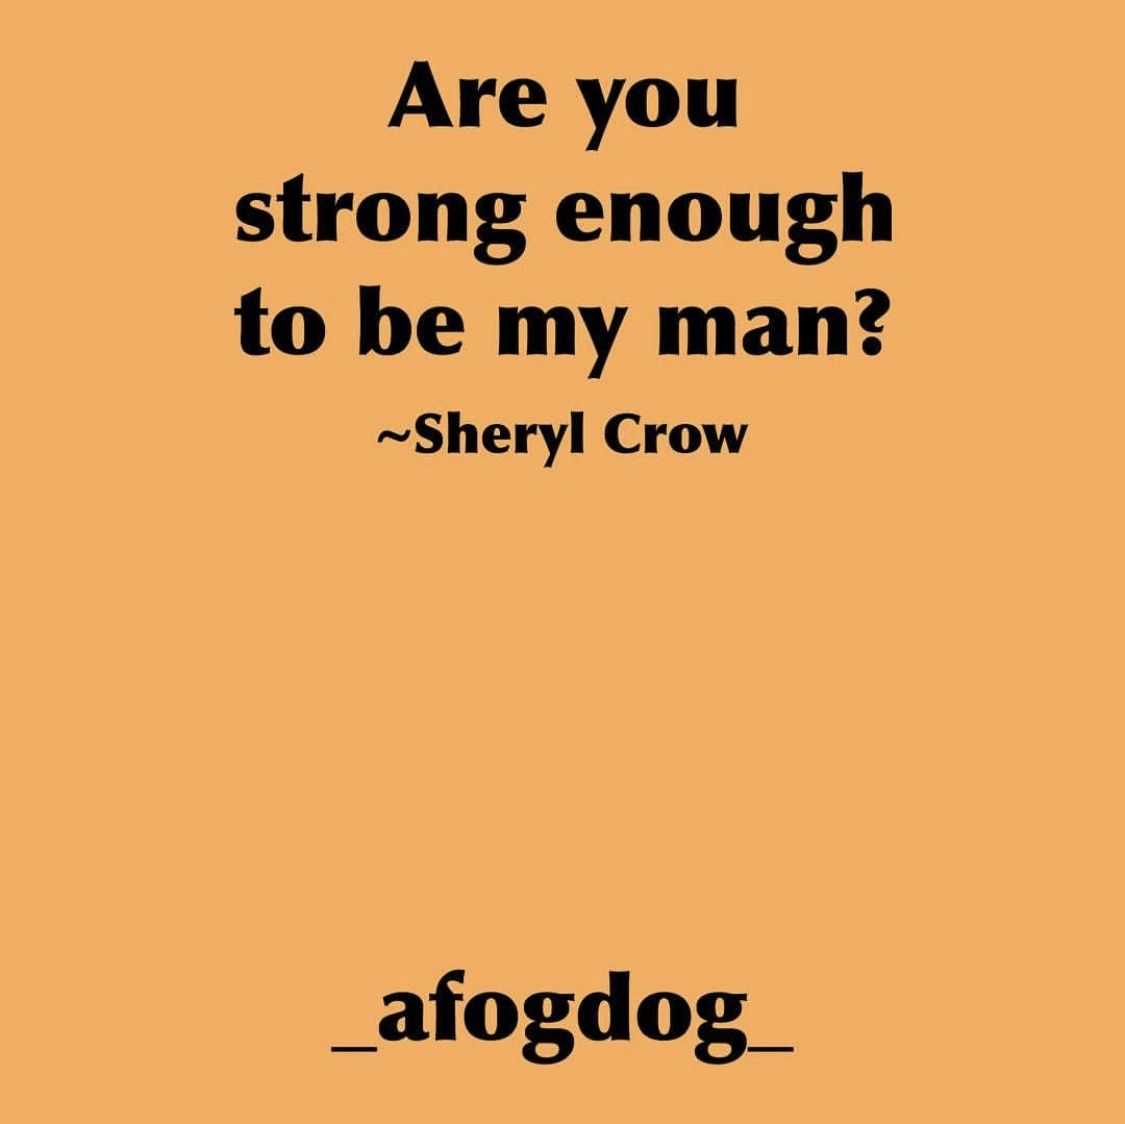 _afogdog_ Are you strong enough to be my man - Sheryl Crow